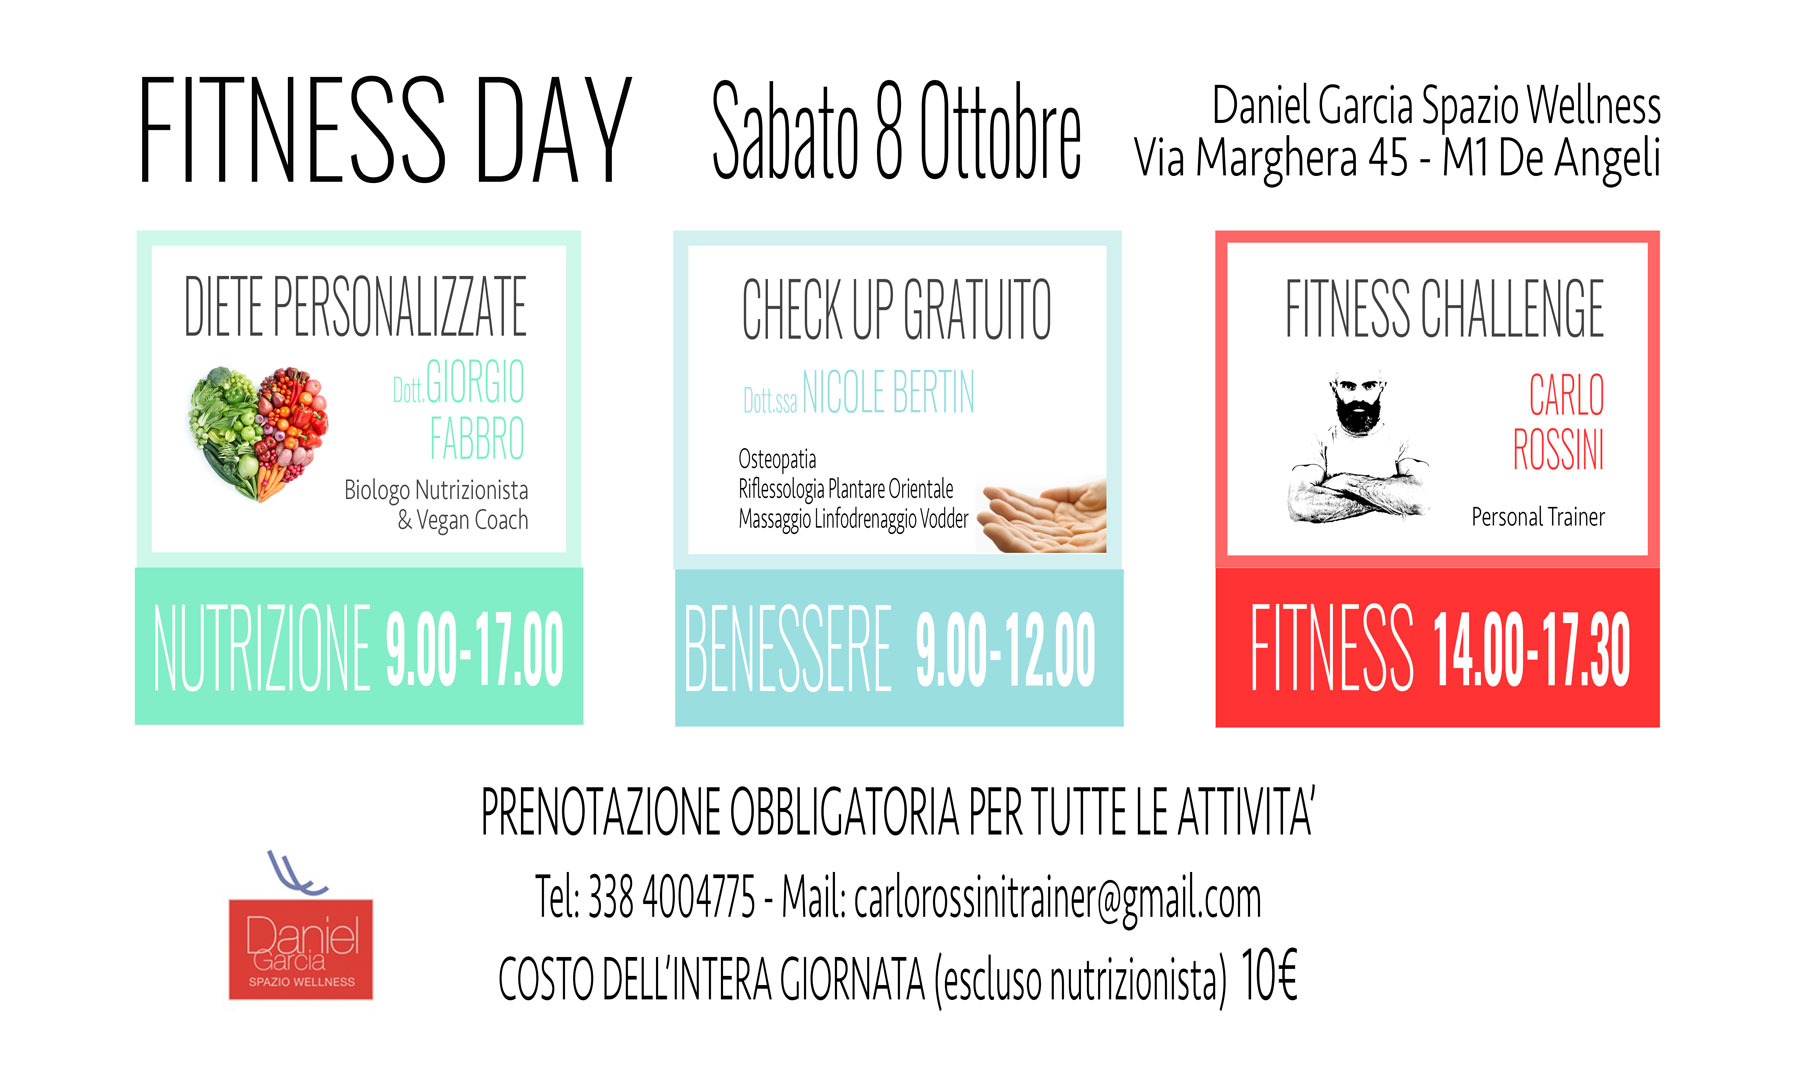 FITNESS DAY WEB